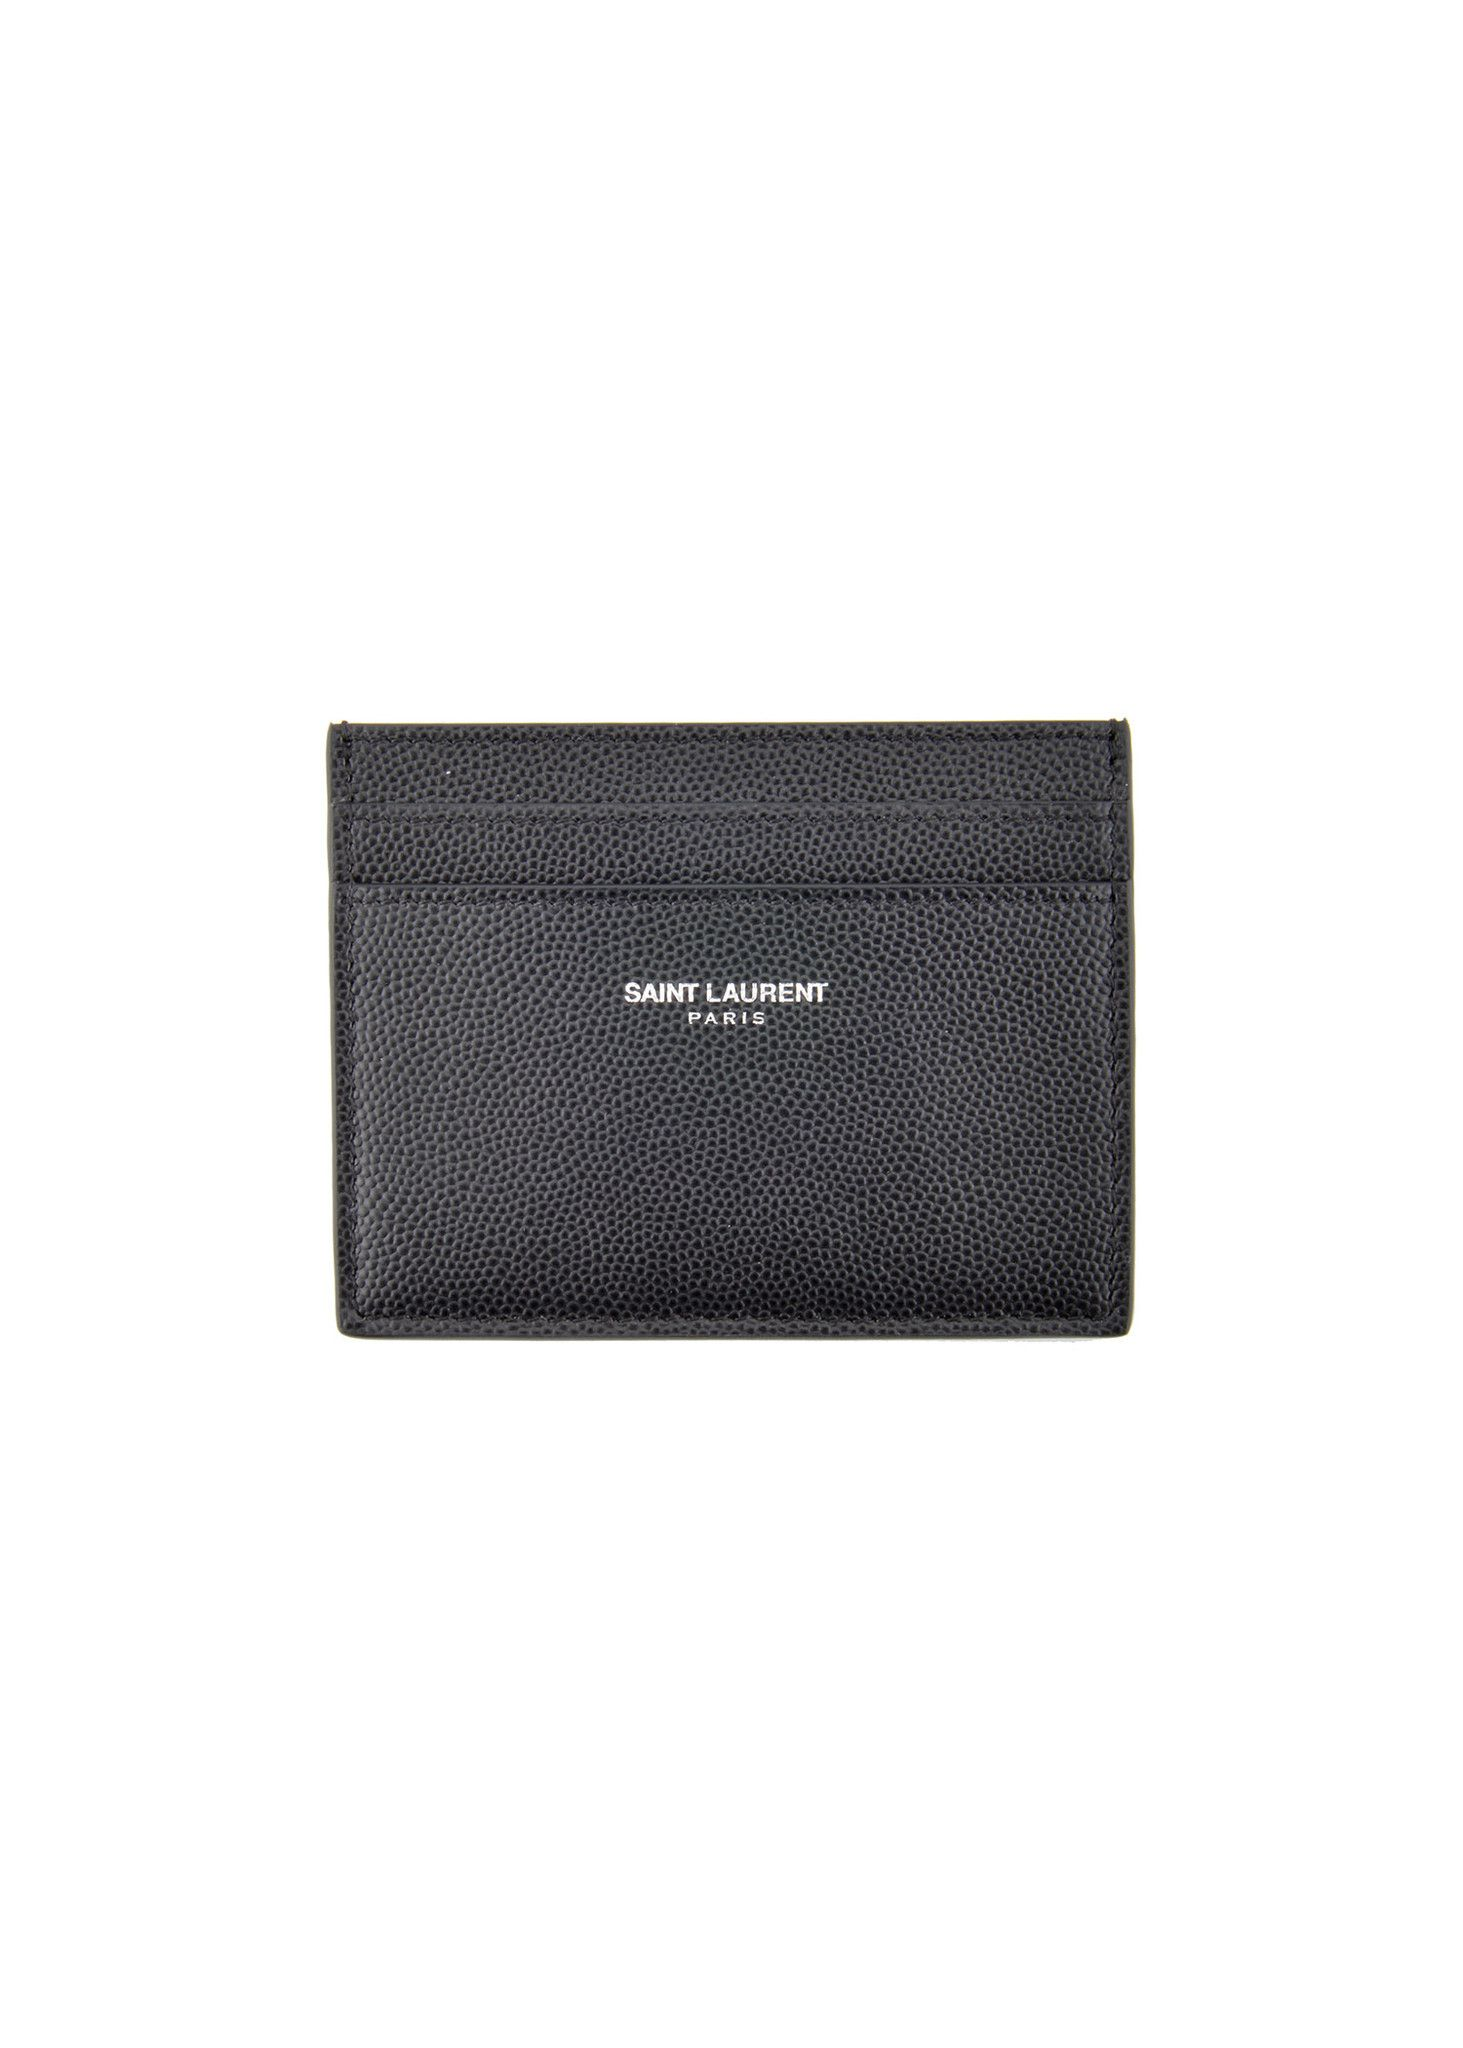 Saint Laurent Paris Fall Winter Menswear Black Classic - Porte carte yves saint laurent